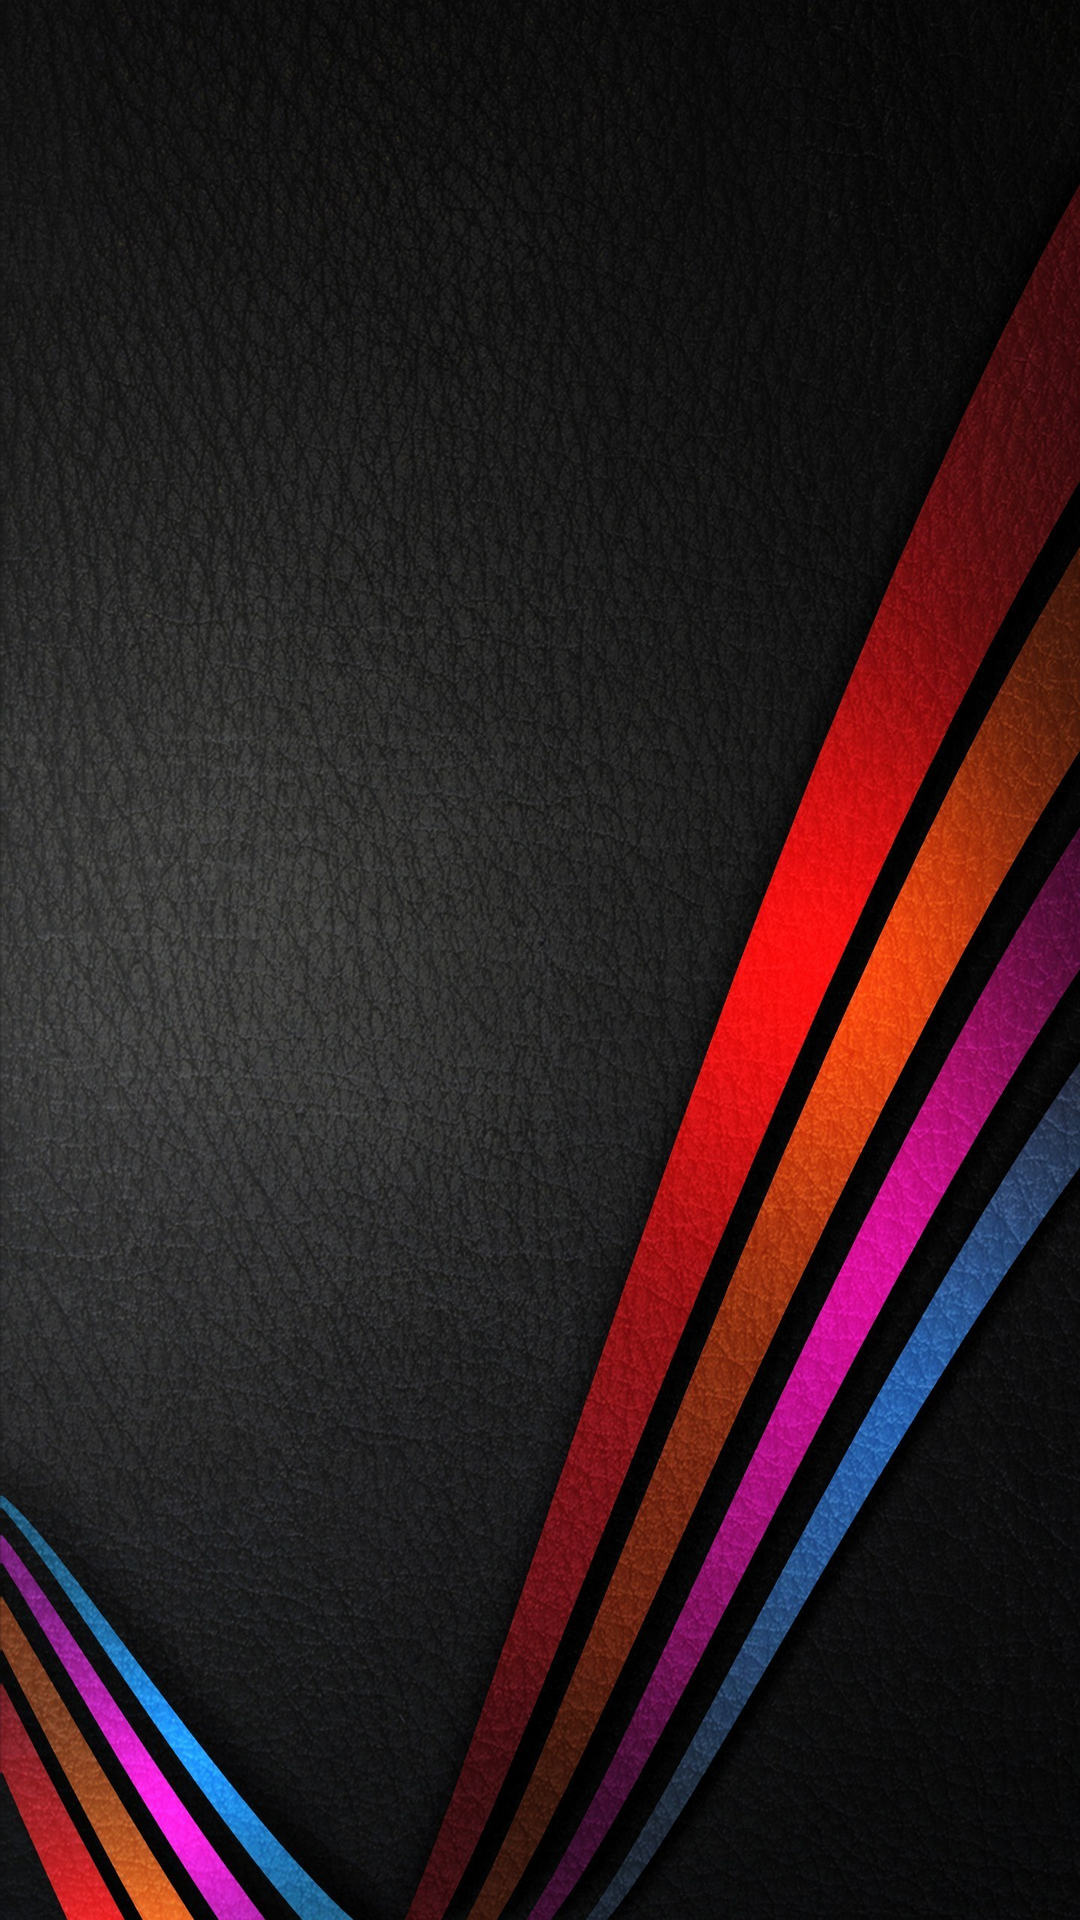 Wallpapers for galaxy black leather pattern background with black leather design on black for galaxy s4 in 1080x1920 resolution voltagebd Gallery